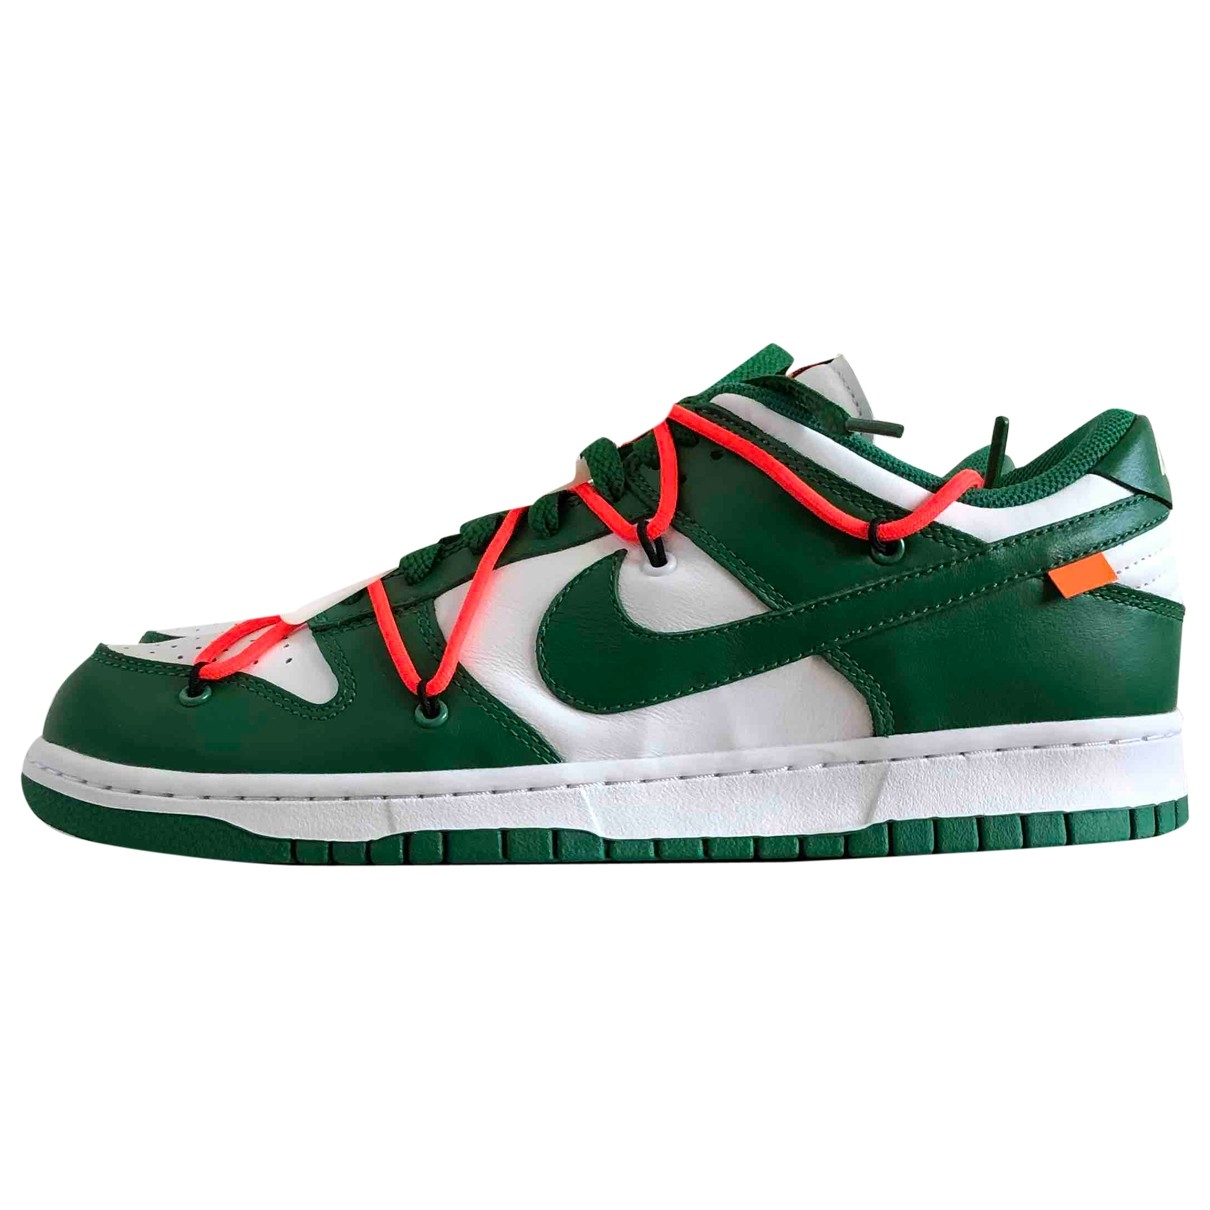 Nike X Off-white Dunk Low Green Leather Trainers for Men 44 EU